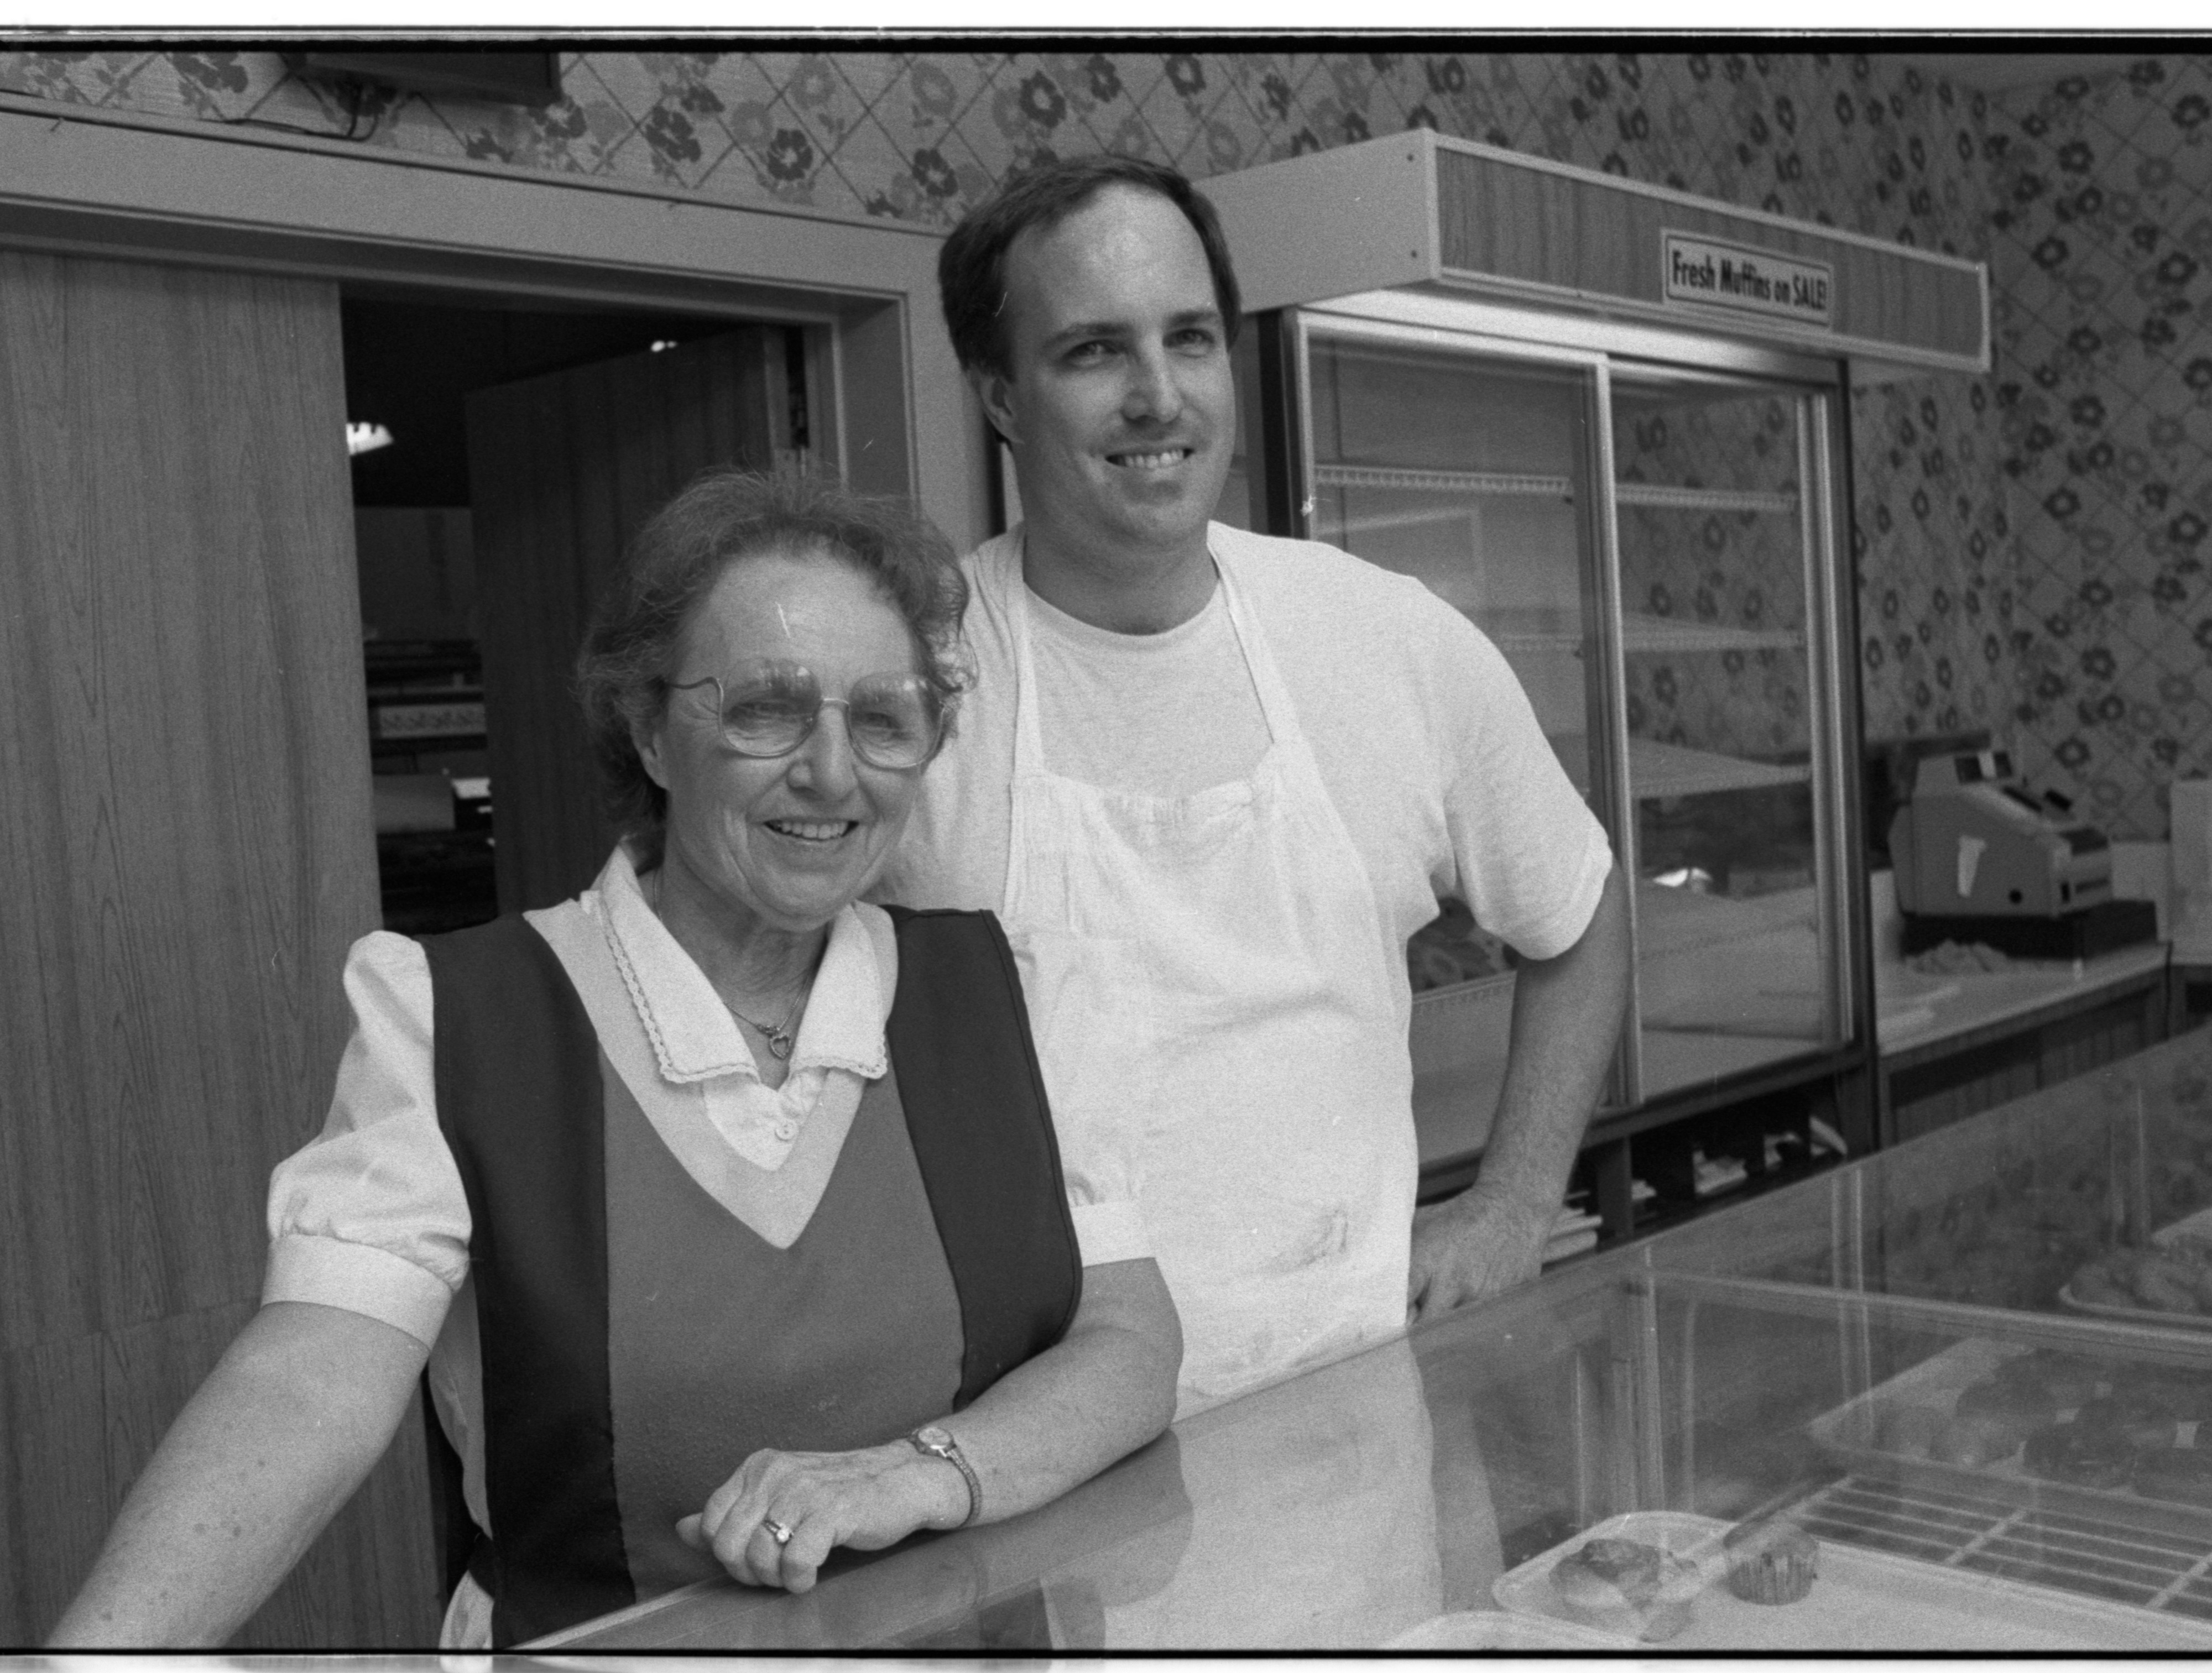 Quality Bakery, Founded In 1920, To Close, May 1987 image